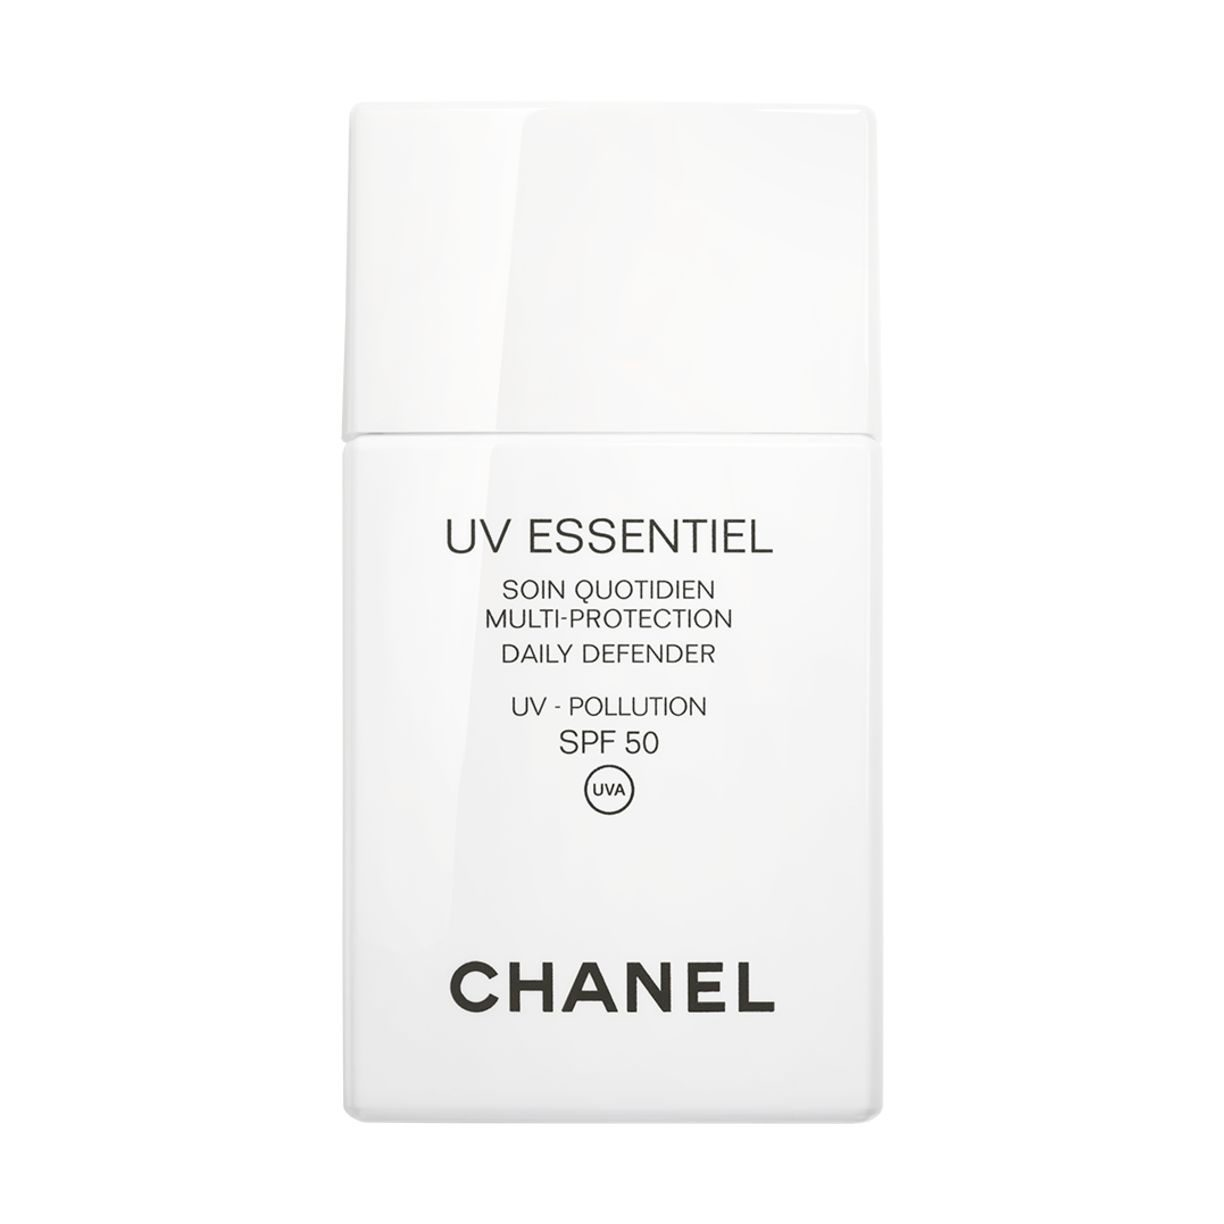 UV ESSENTIEL KOMPLEKSOWA OCHRONA NA CO DZIEŃ UV /POLLUTION SPF 50 30ml